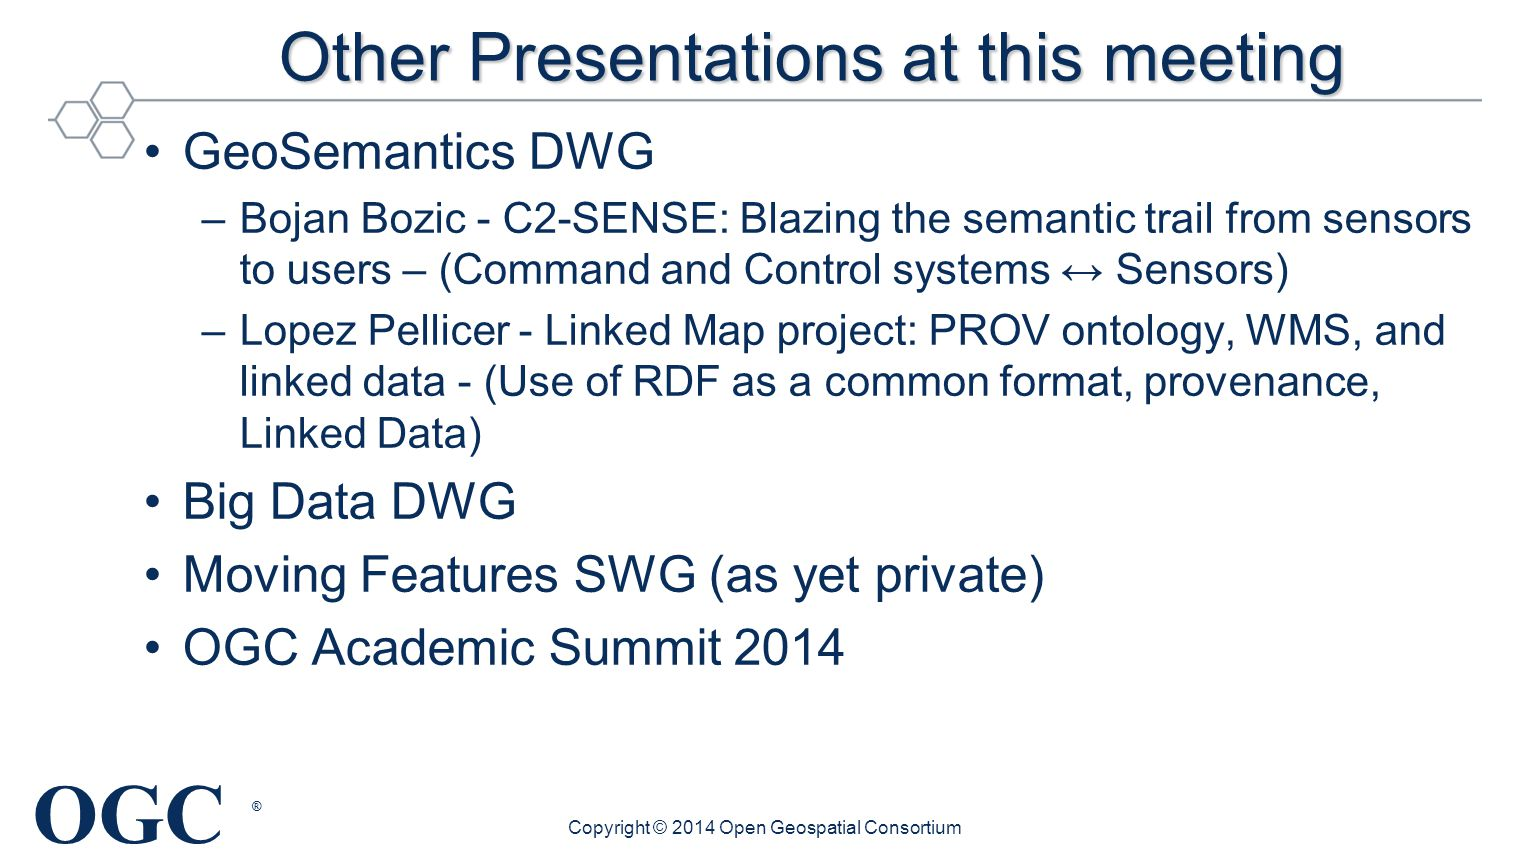 OGC ® Other Presentations at this meeting GeoSemantics DWG –Bojan Bozic - C2-SENSE: Blazing the semantic trail from sensors to users – (Command and Control systems ↔ Sensors) –Lopez Pellicer - Linked Map project: PROV ontology, WMS, and linked data - (Use of RDF as a common format, provenance, Linked Data) Big Data DWG Moving Features SWG (as yet private) OGC Academic Summit 2014 Copyright © 2014 Open Geospatial Consortium